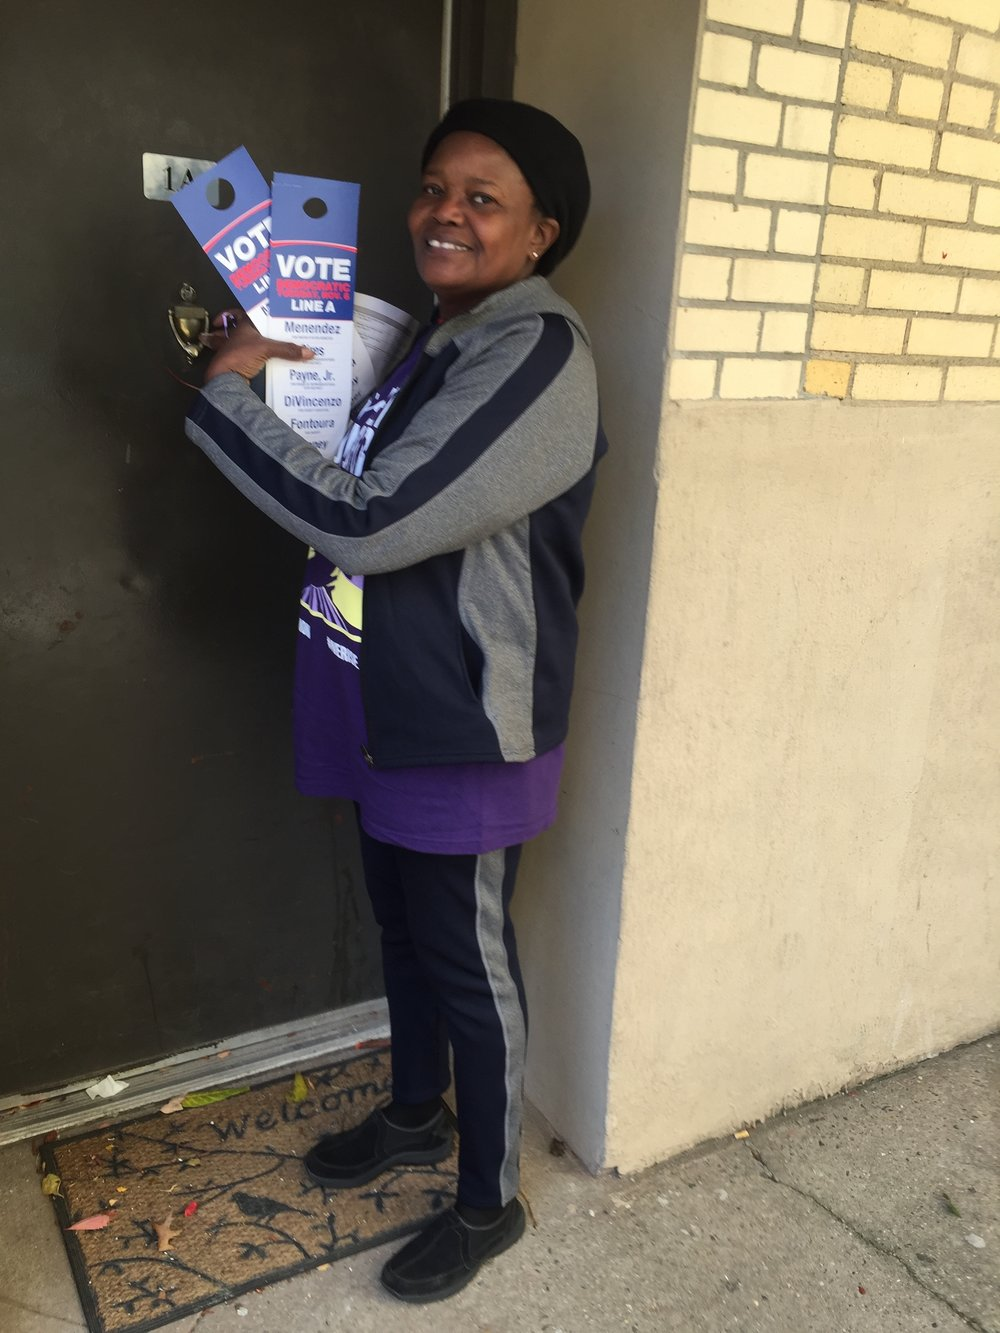 Marie Toussaint from Local 284, a cafeteria worker in Newark, knocking on doors in Newark for Senator Menendez.